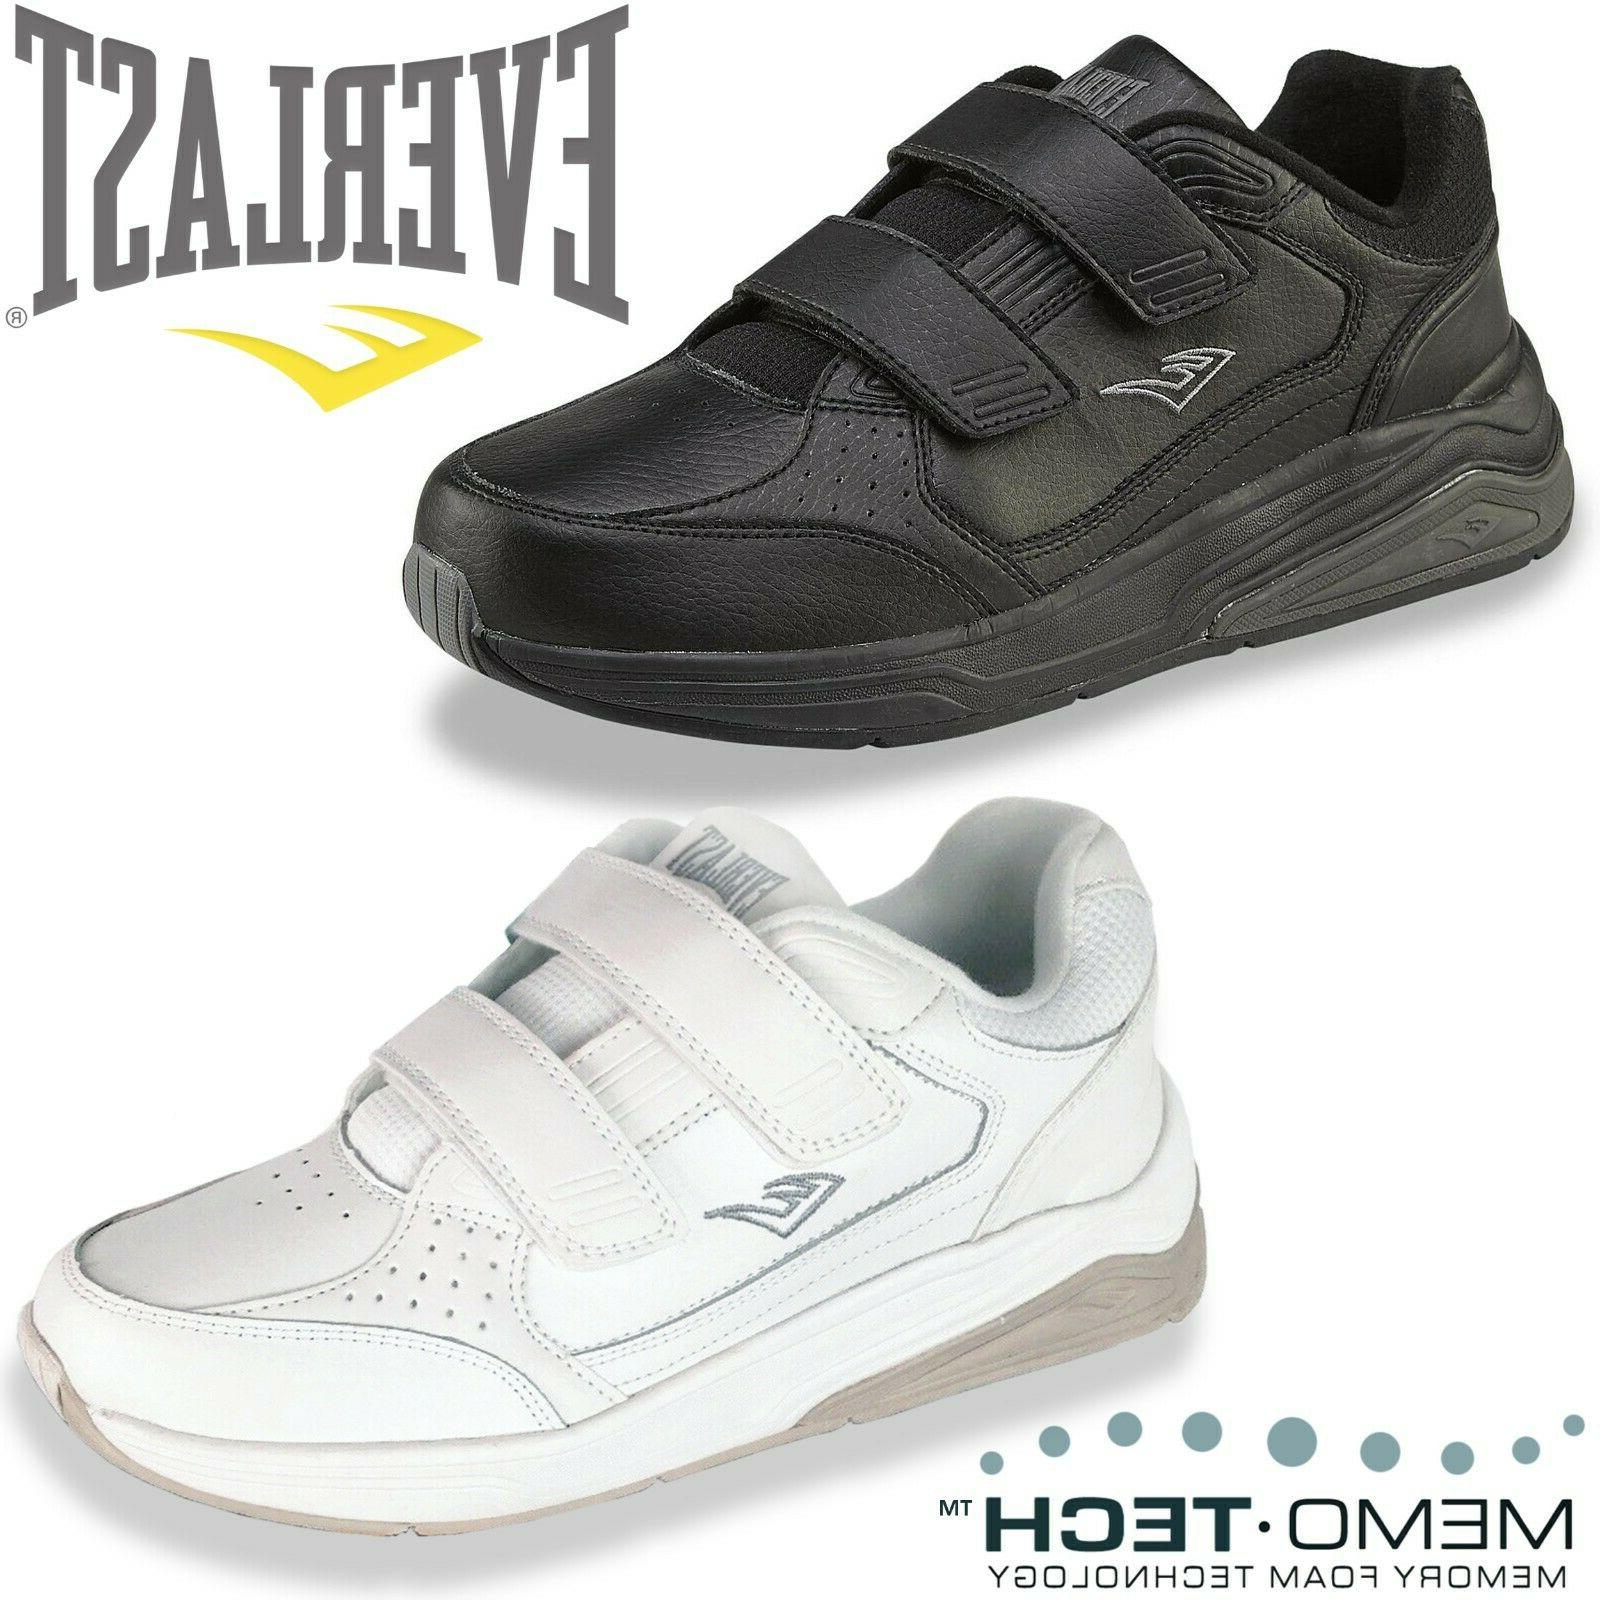 mens wide width running tennis athletic shoes